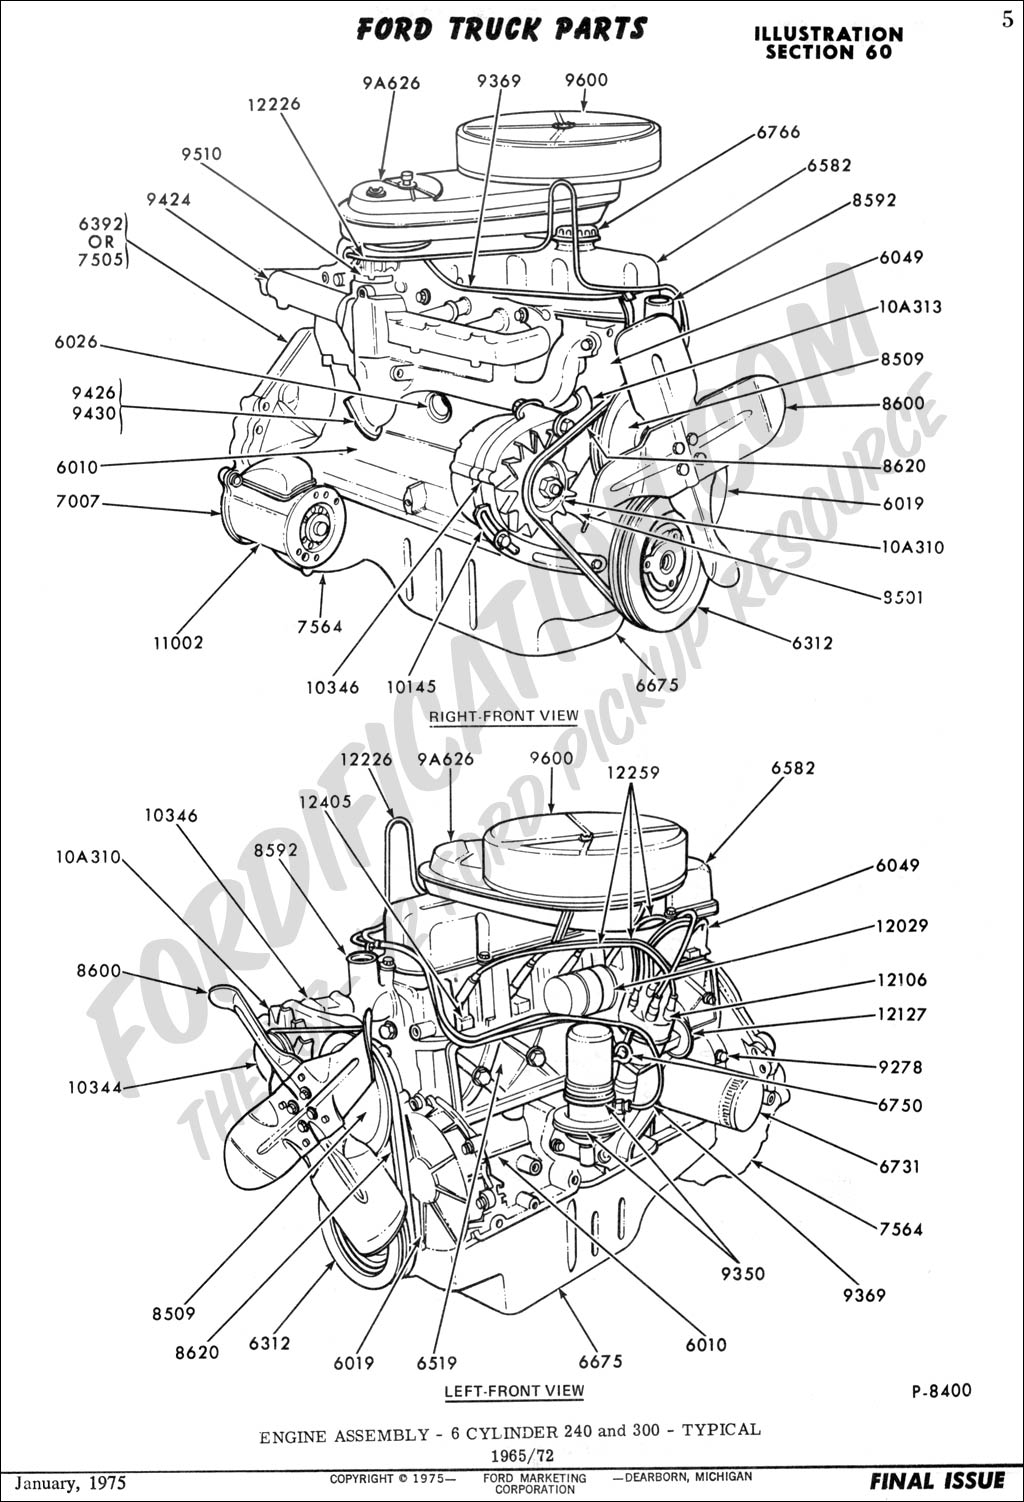 Serpentine Belt Diagram 2007 Bmw 328i 6 Cylinder 30 Liter Engine 00342 furthermore Ford Mustang Engine Diagram furthermore Engine Under The Hood together with Photo 09 also 2002 Ford F 150 Engine Diagram. on ford v8 engine diagram